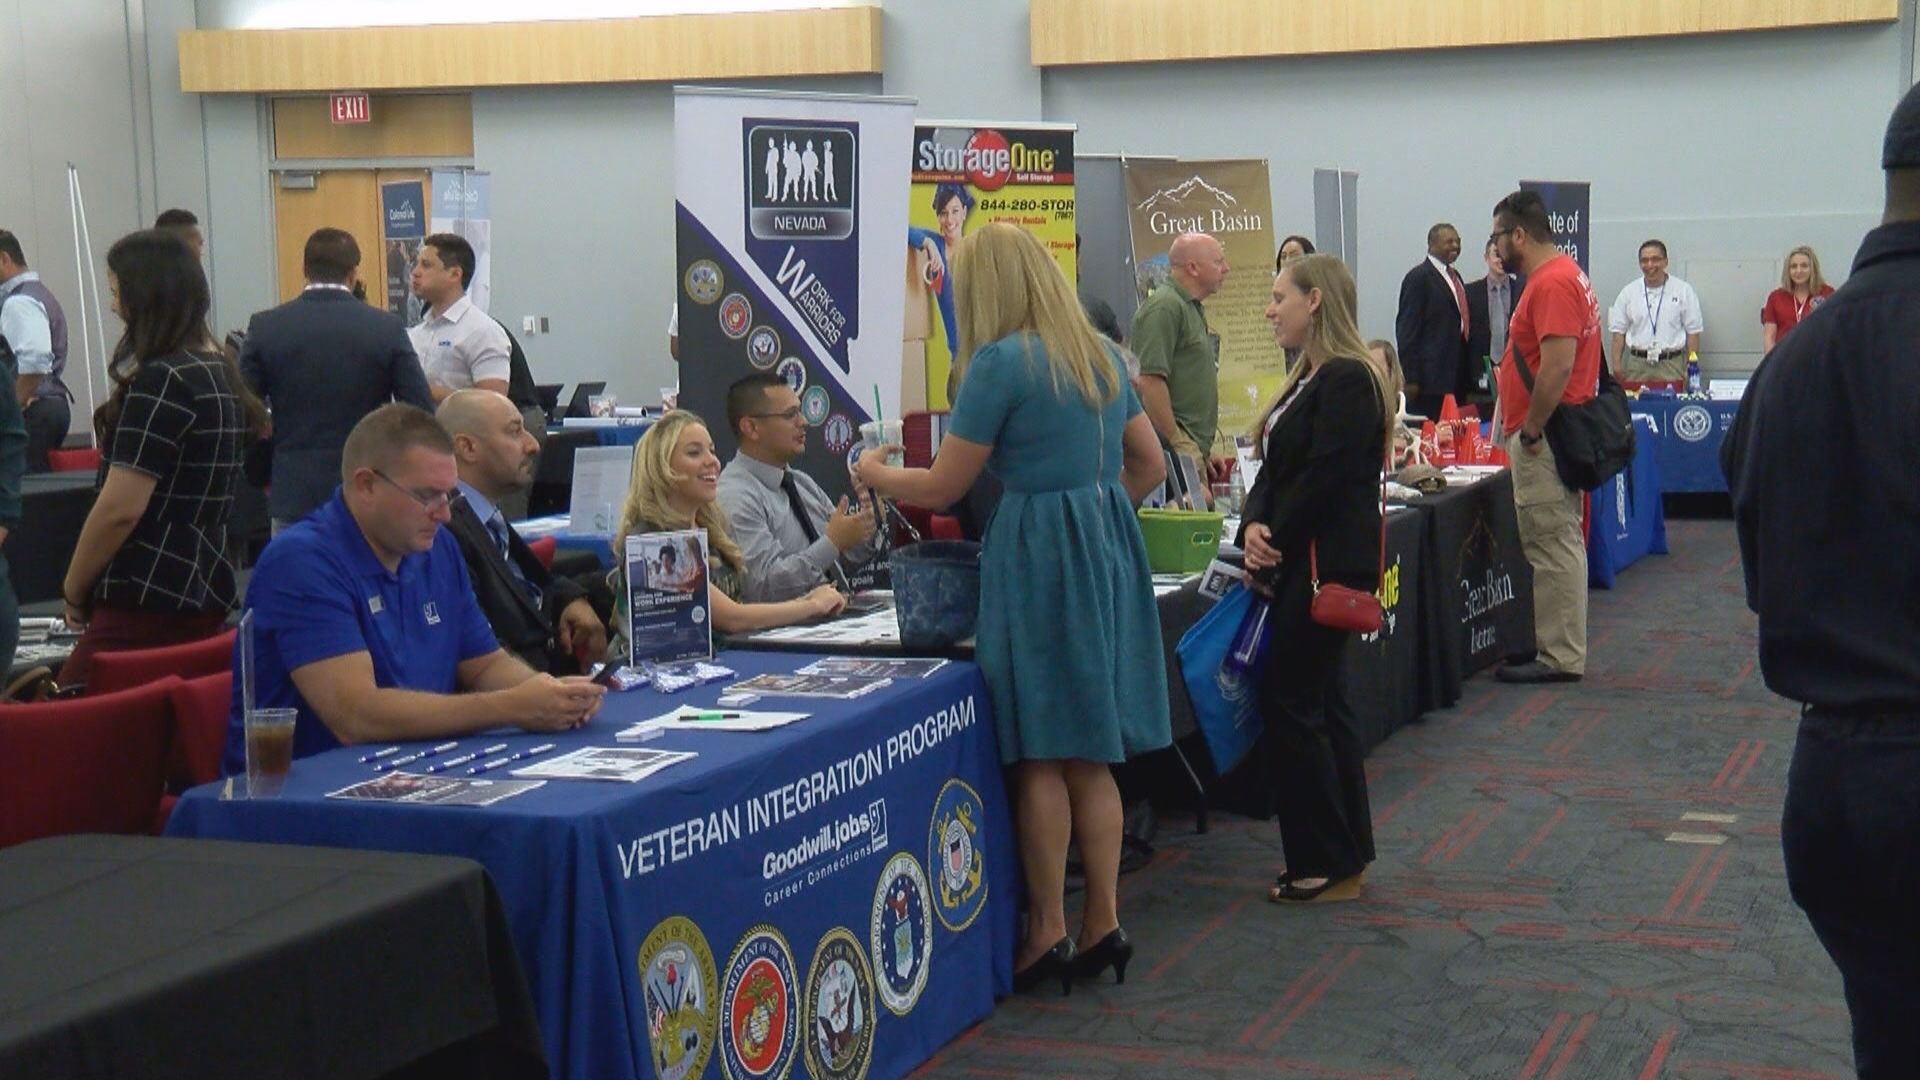 Nevada veterans and their families take part in a career fair and workshops Saturday, July 22, 2017, on the UNLV campus. (Chad Graves/KSNV)